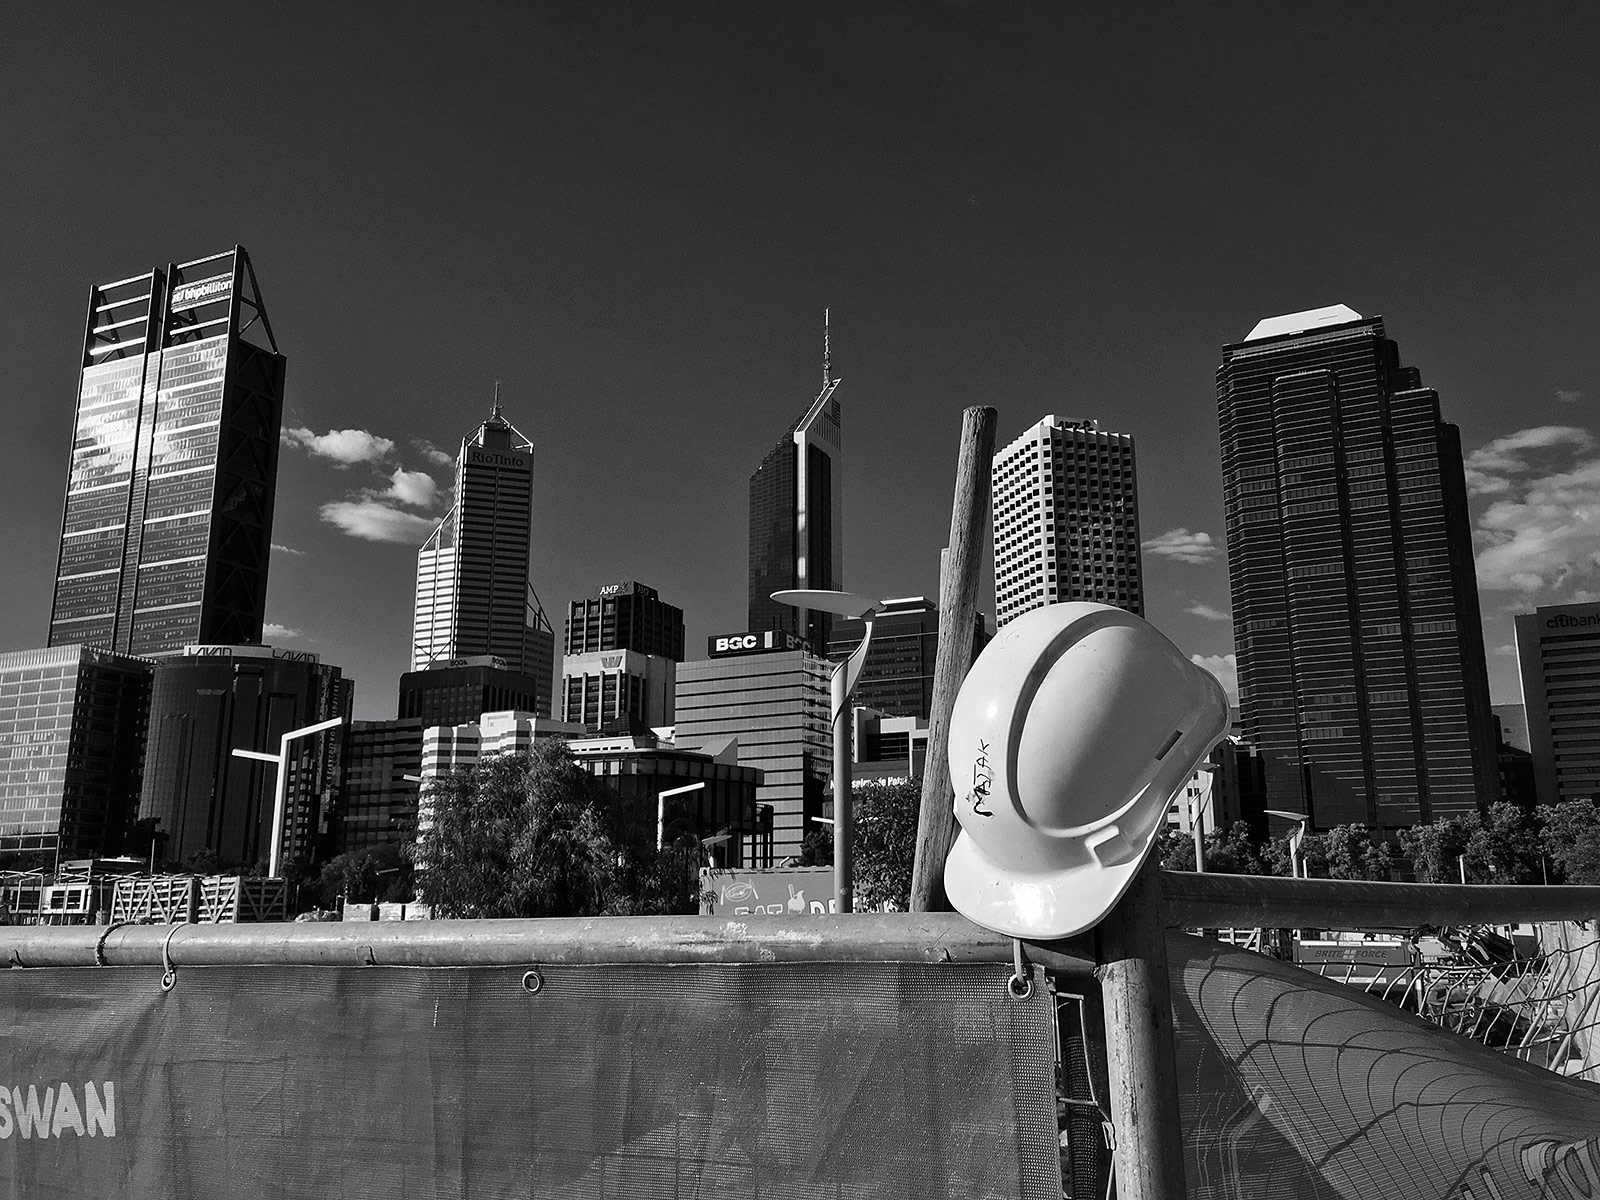 Perth Construction